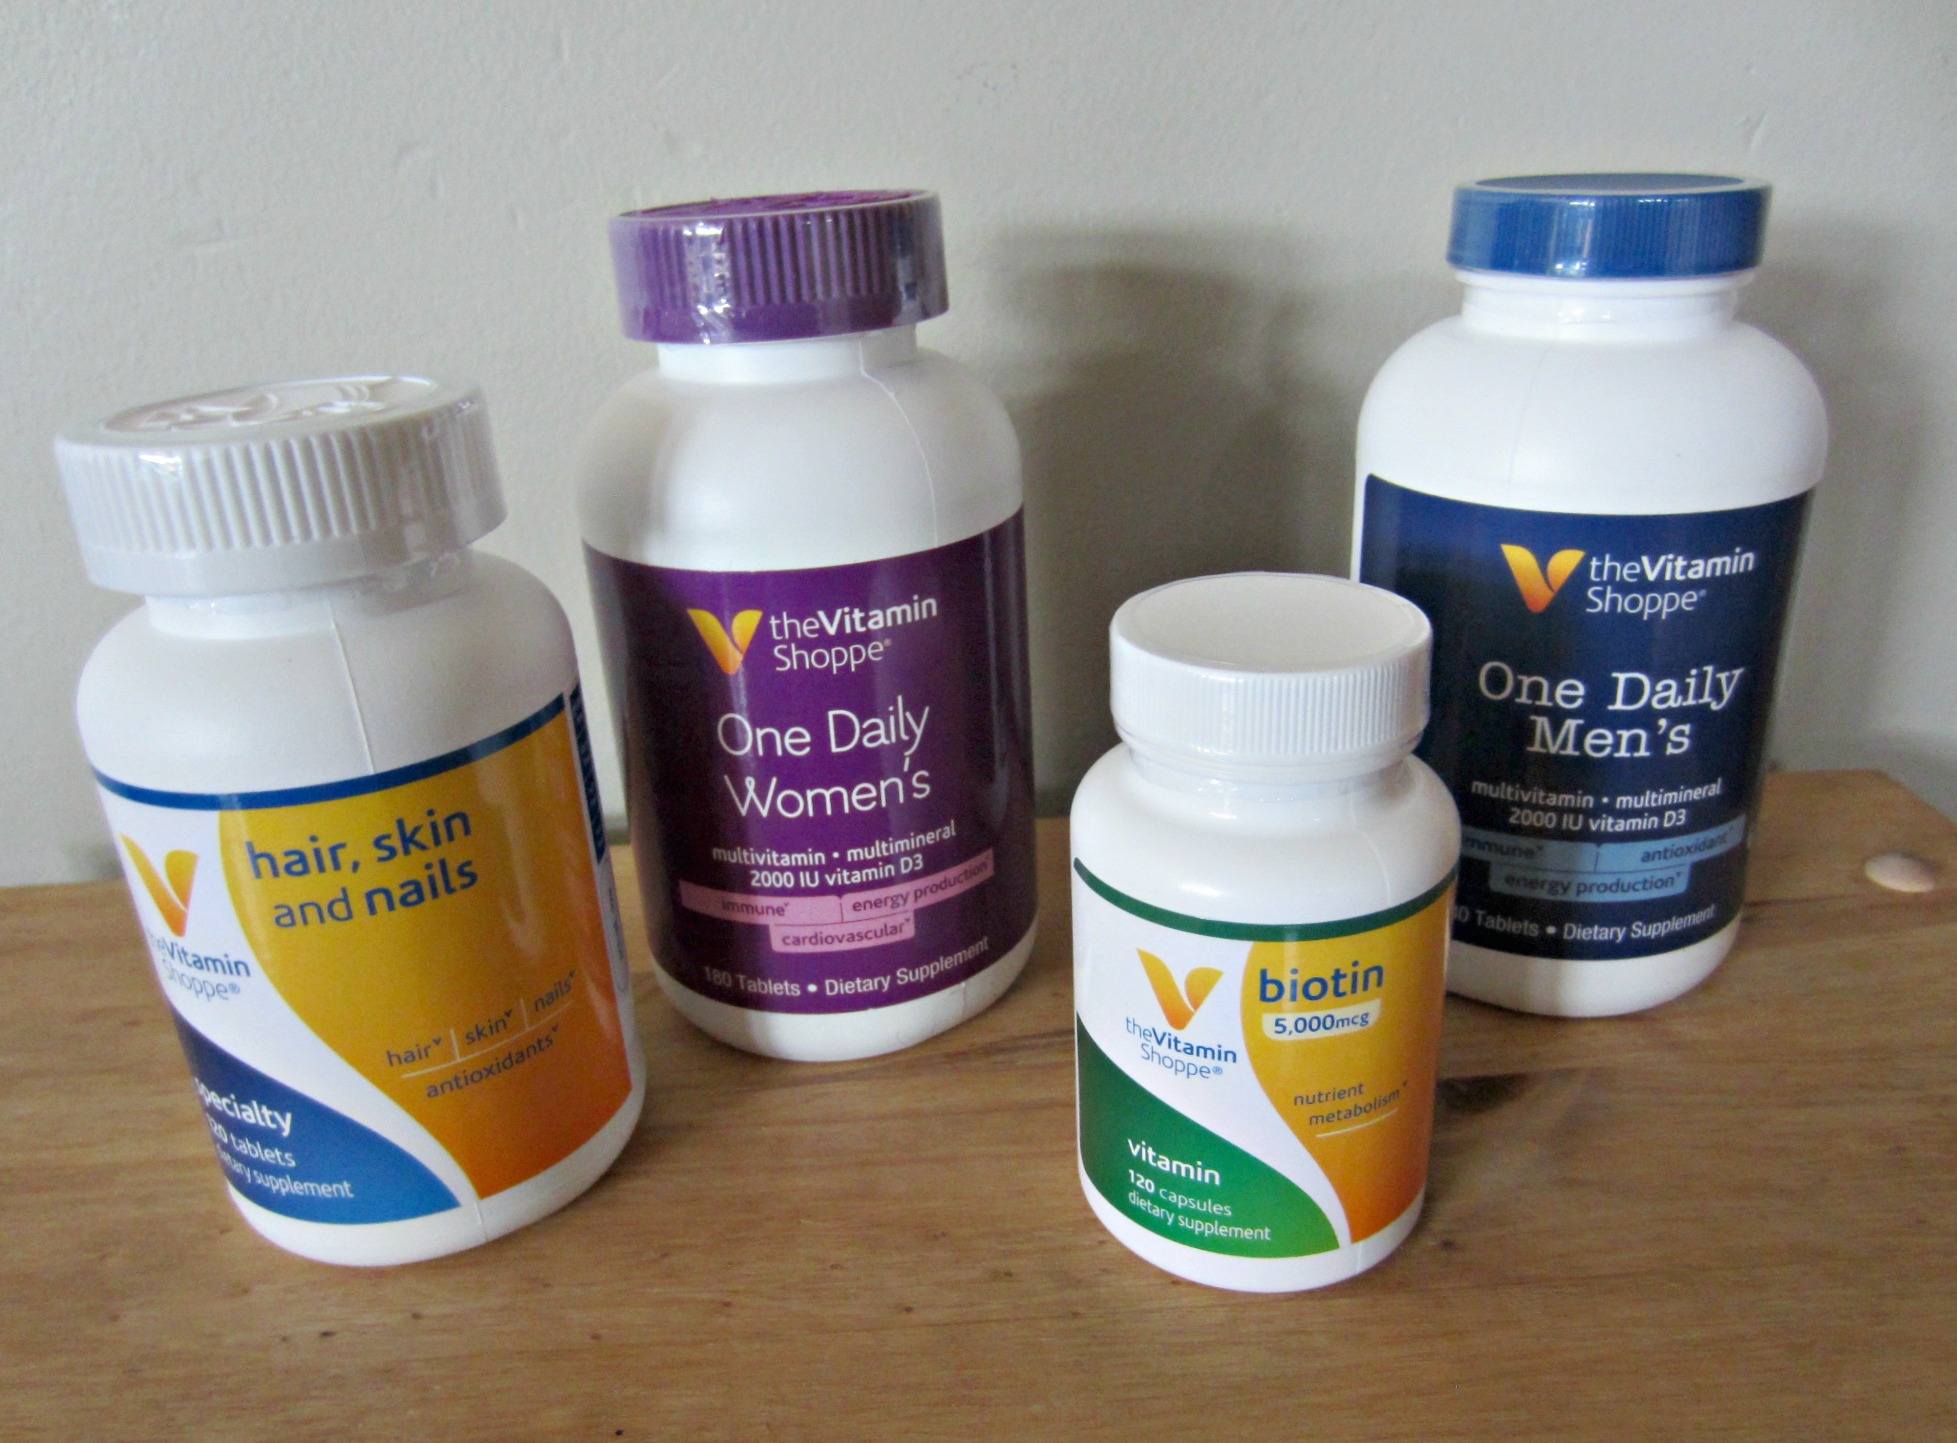 vitamin shoppe brand vitamins and supplements